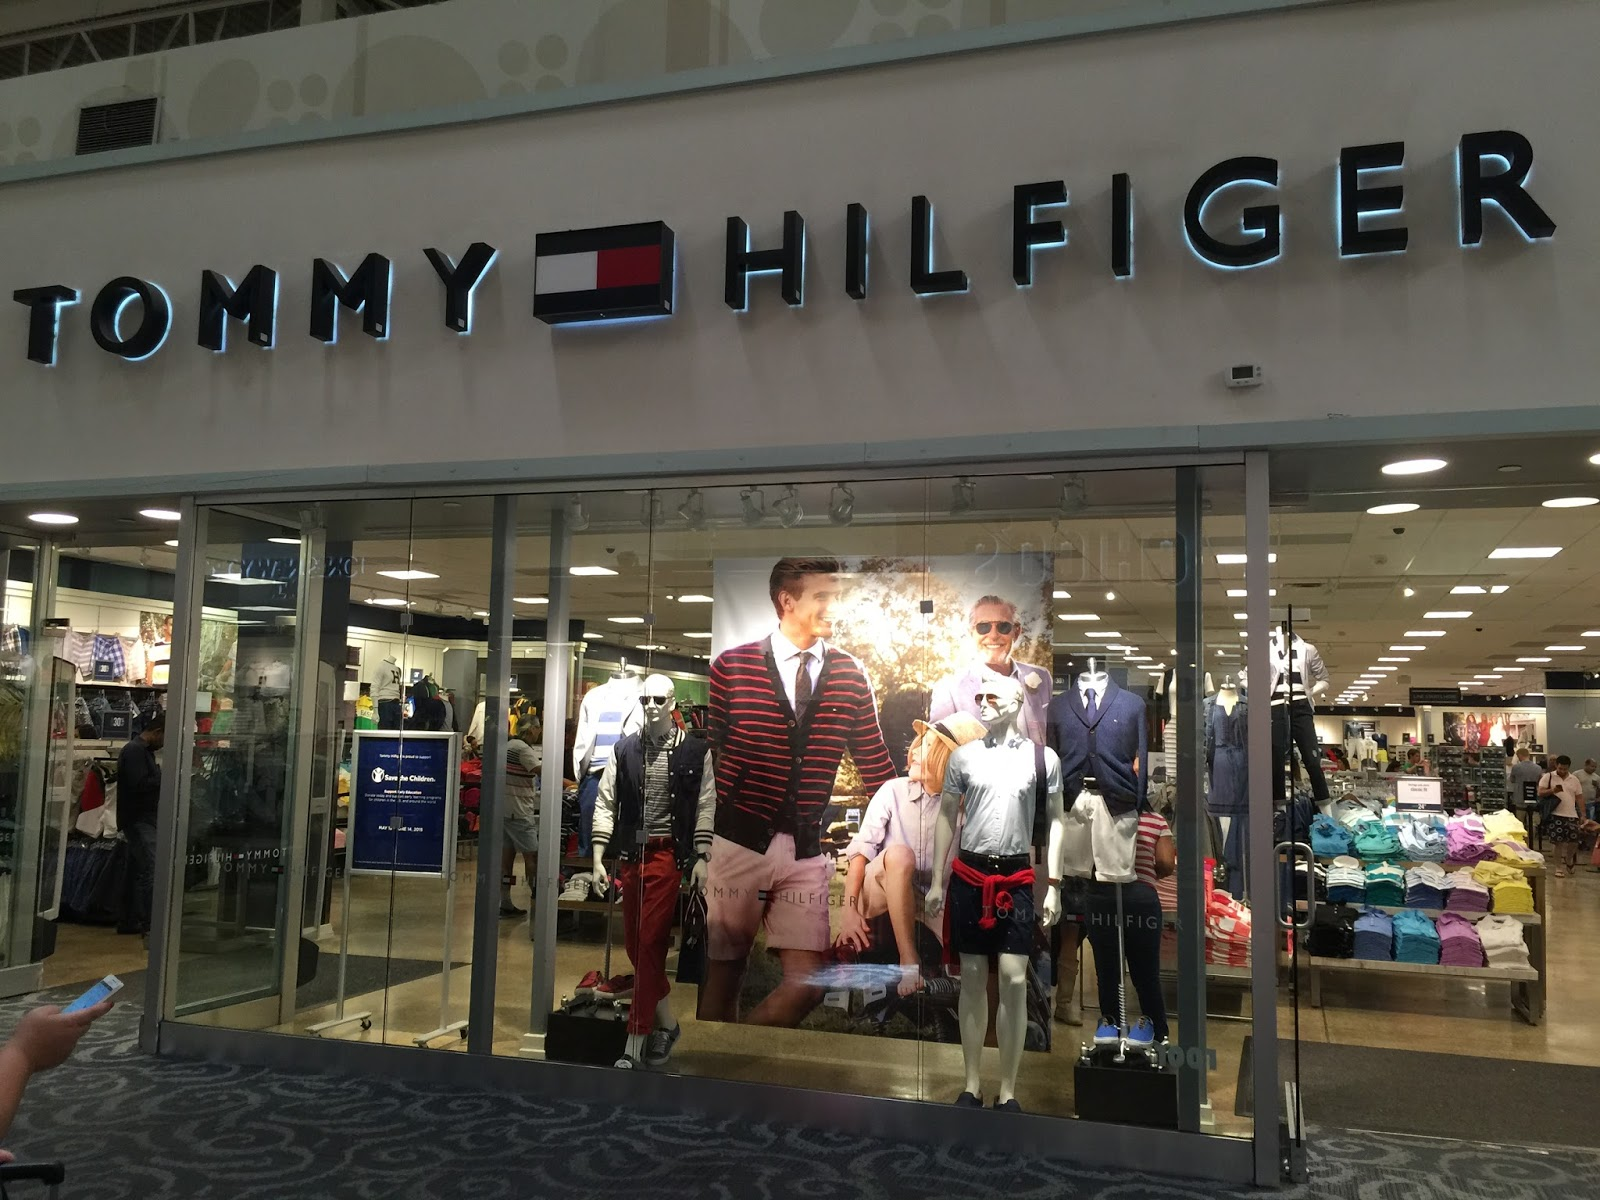 photo relating to Tommy Hilfiger Coupon Printable known as Tommy hilfiger coupon keep : Park and fly hartford ct